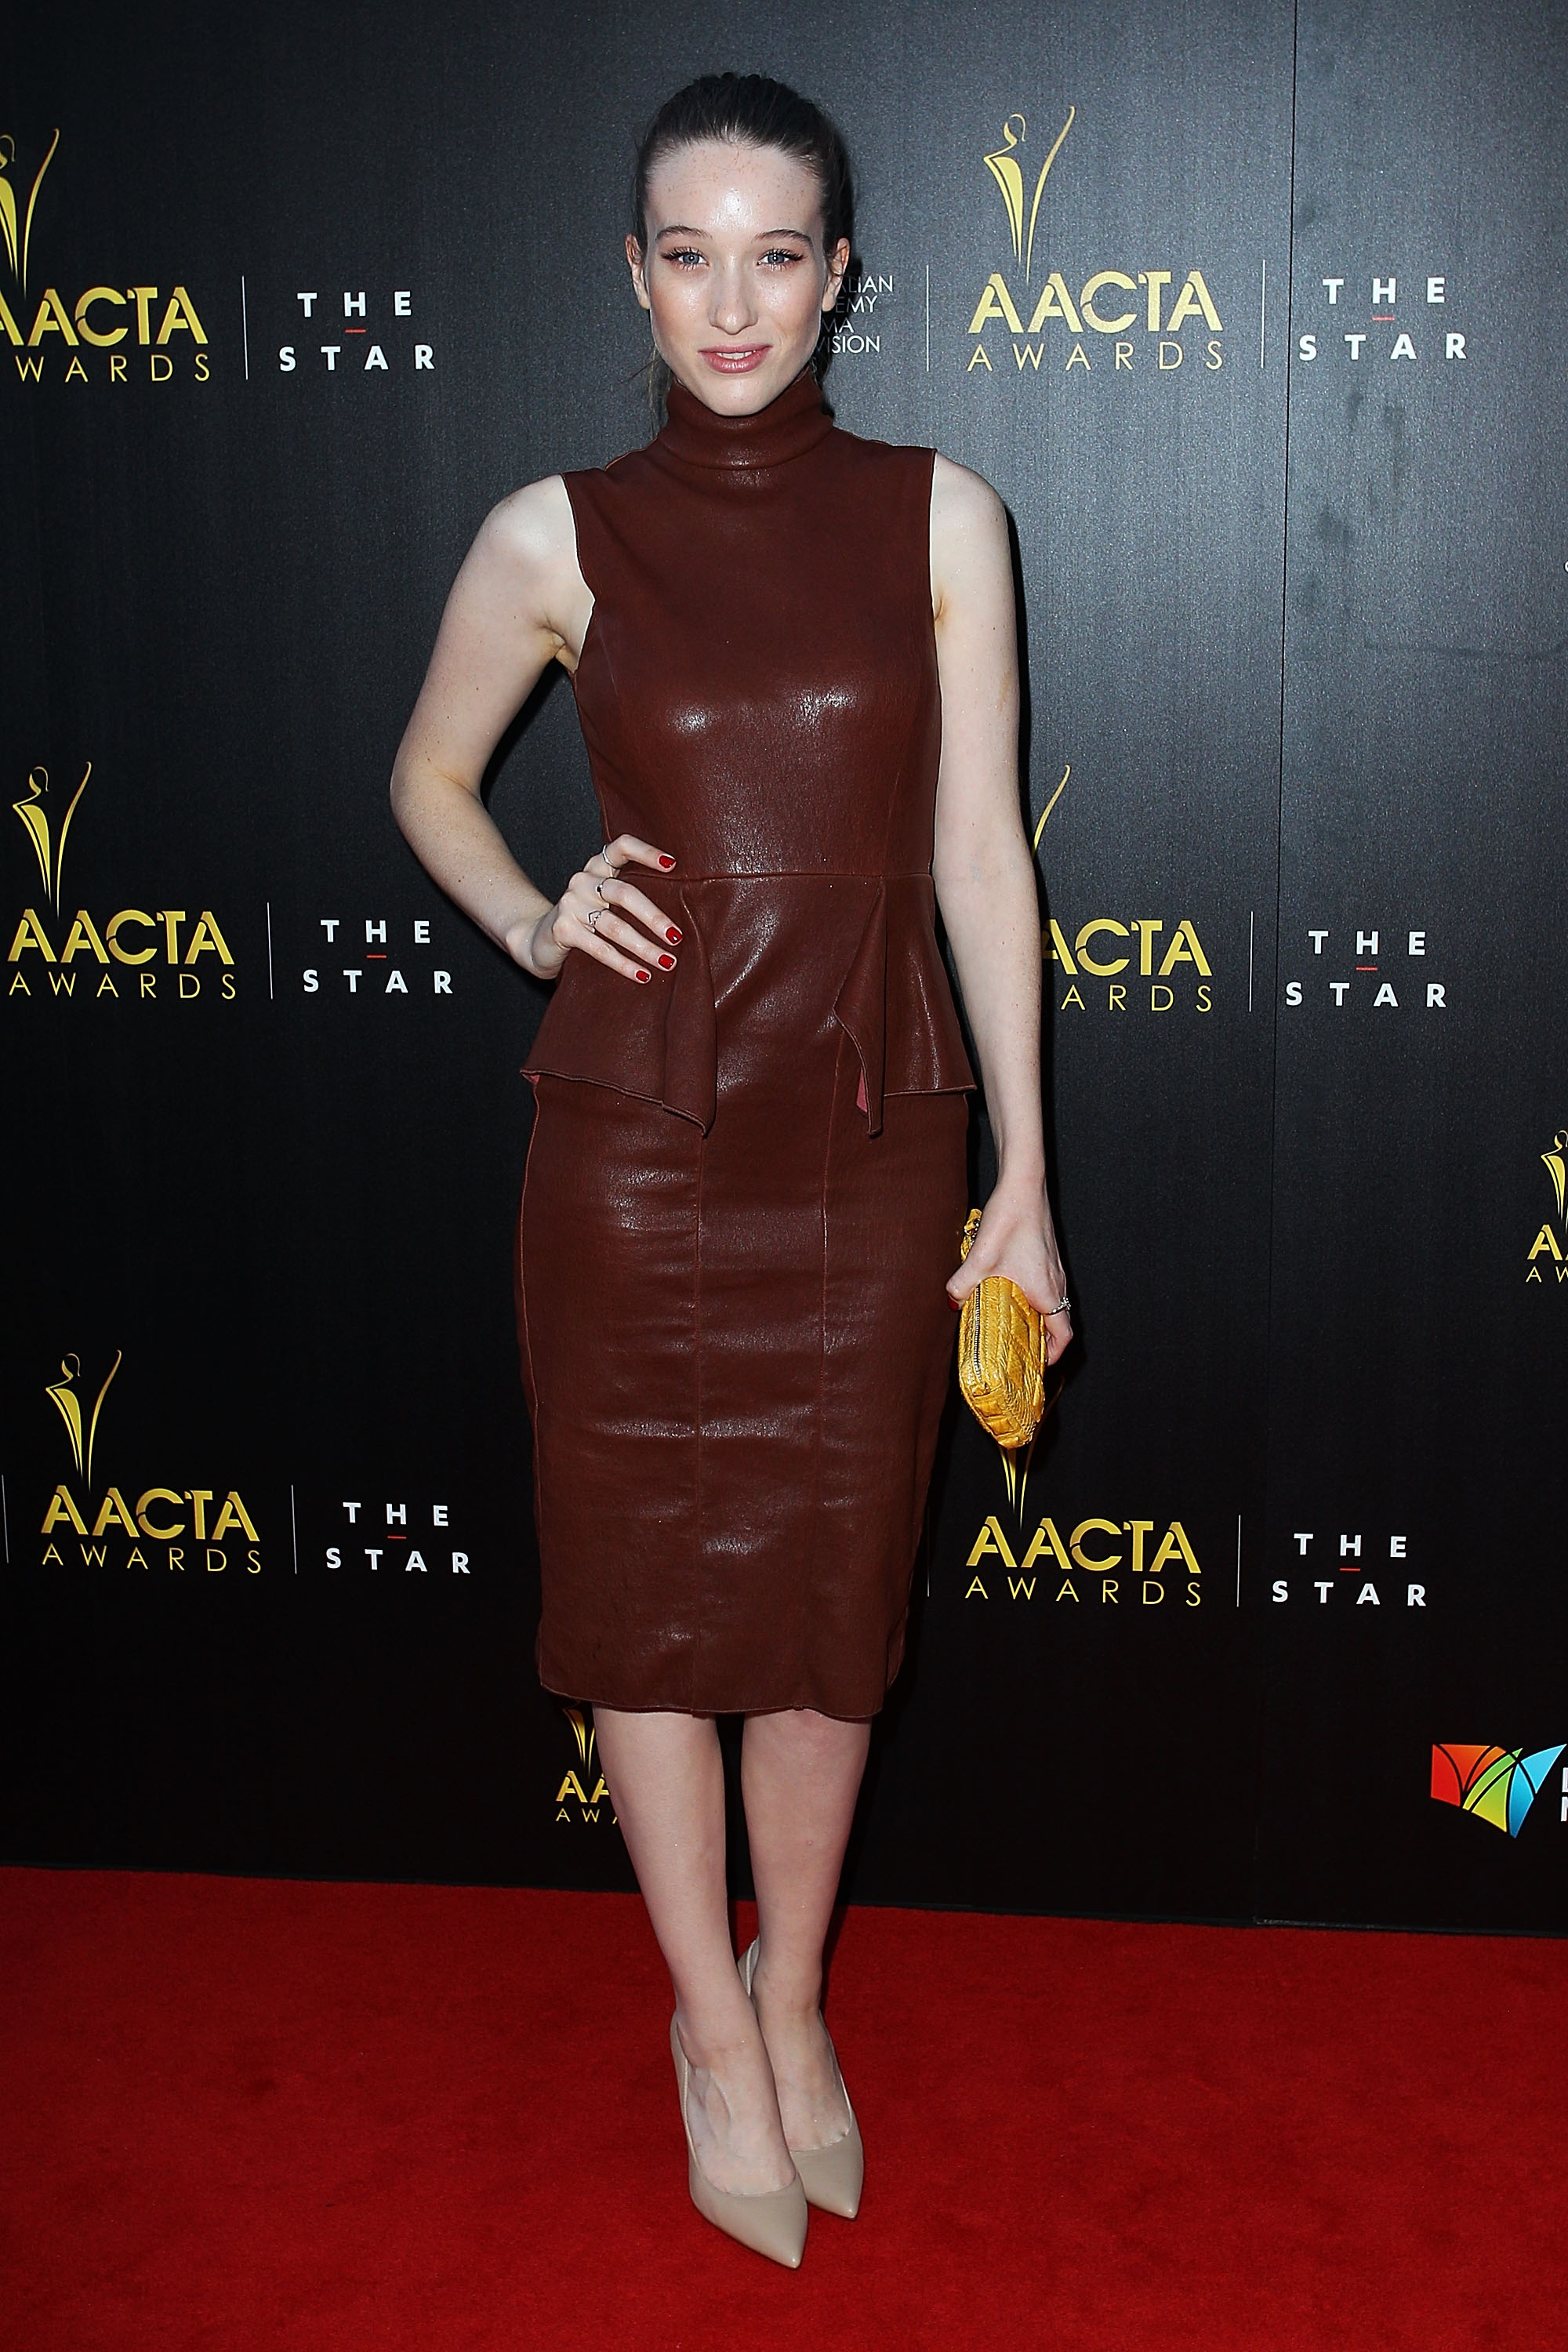 Sophie Lowe went for a leather frock to attend the AACTAs.